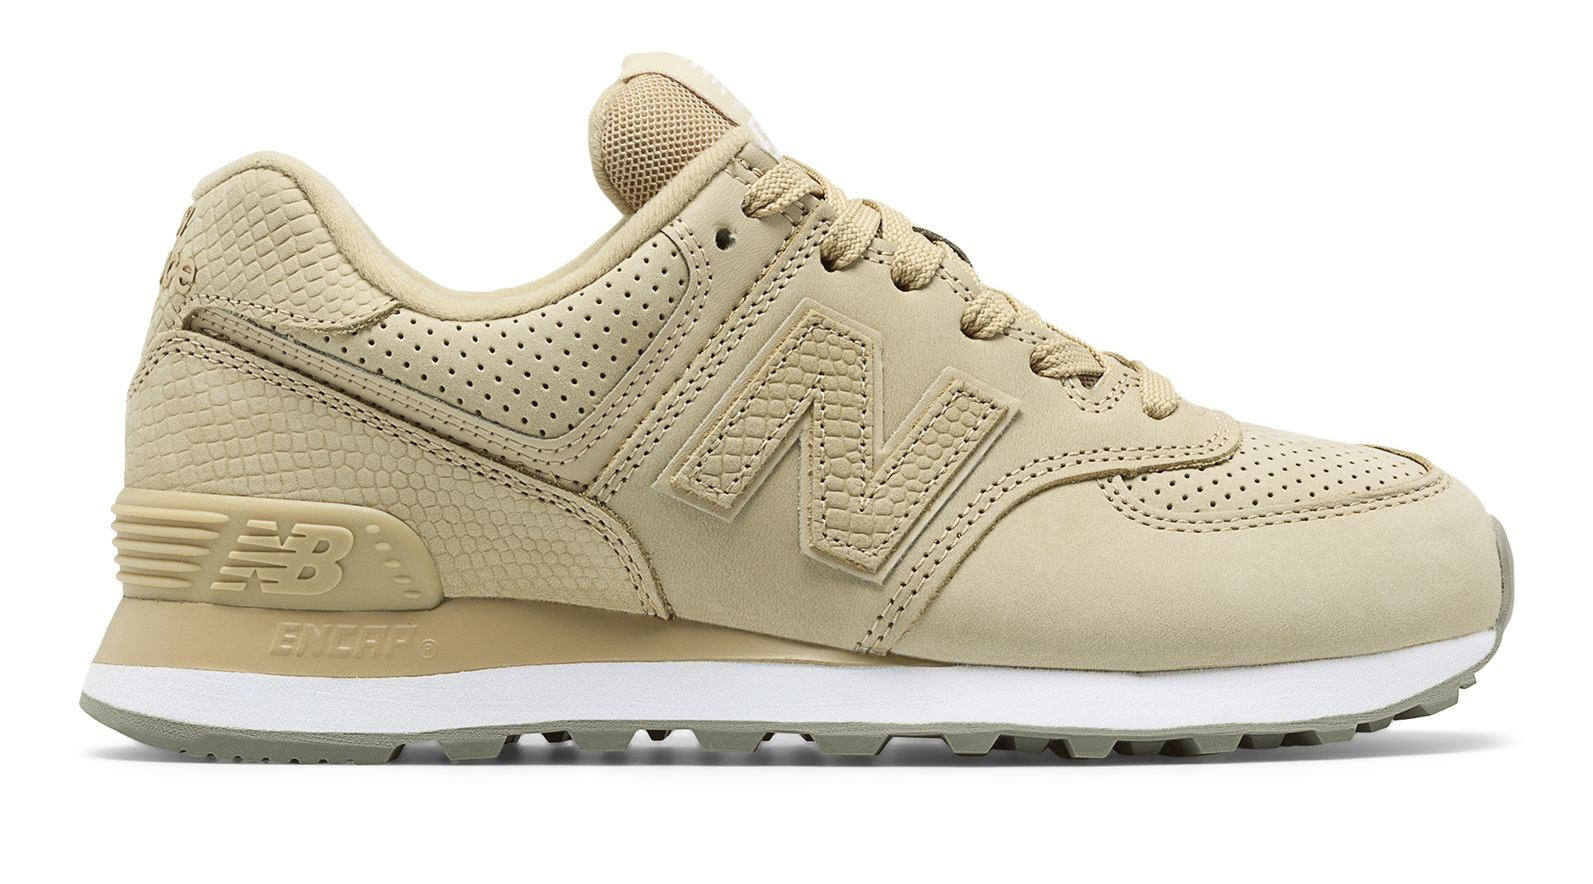 watch ac3e5 20280 Details about New Balance Female Women's 574 Serpent Luxe Adult Lifestyle  Comfort Shoes Tan